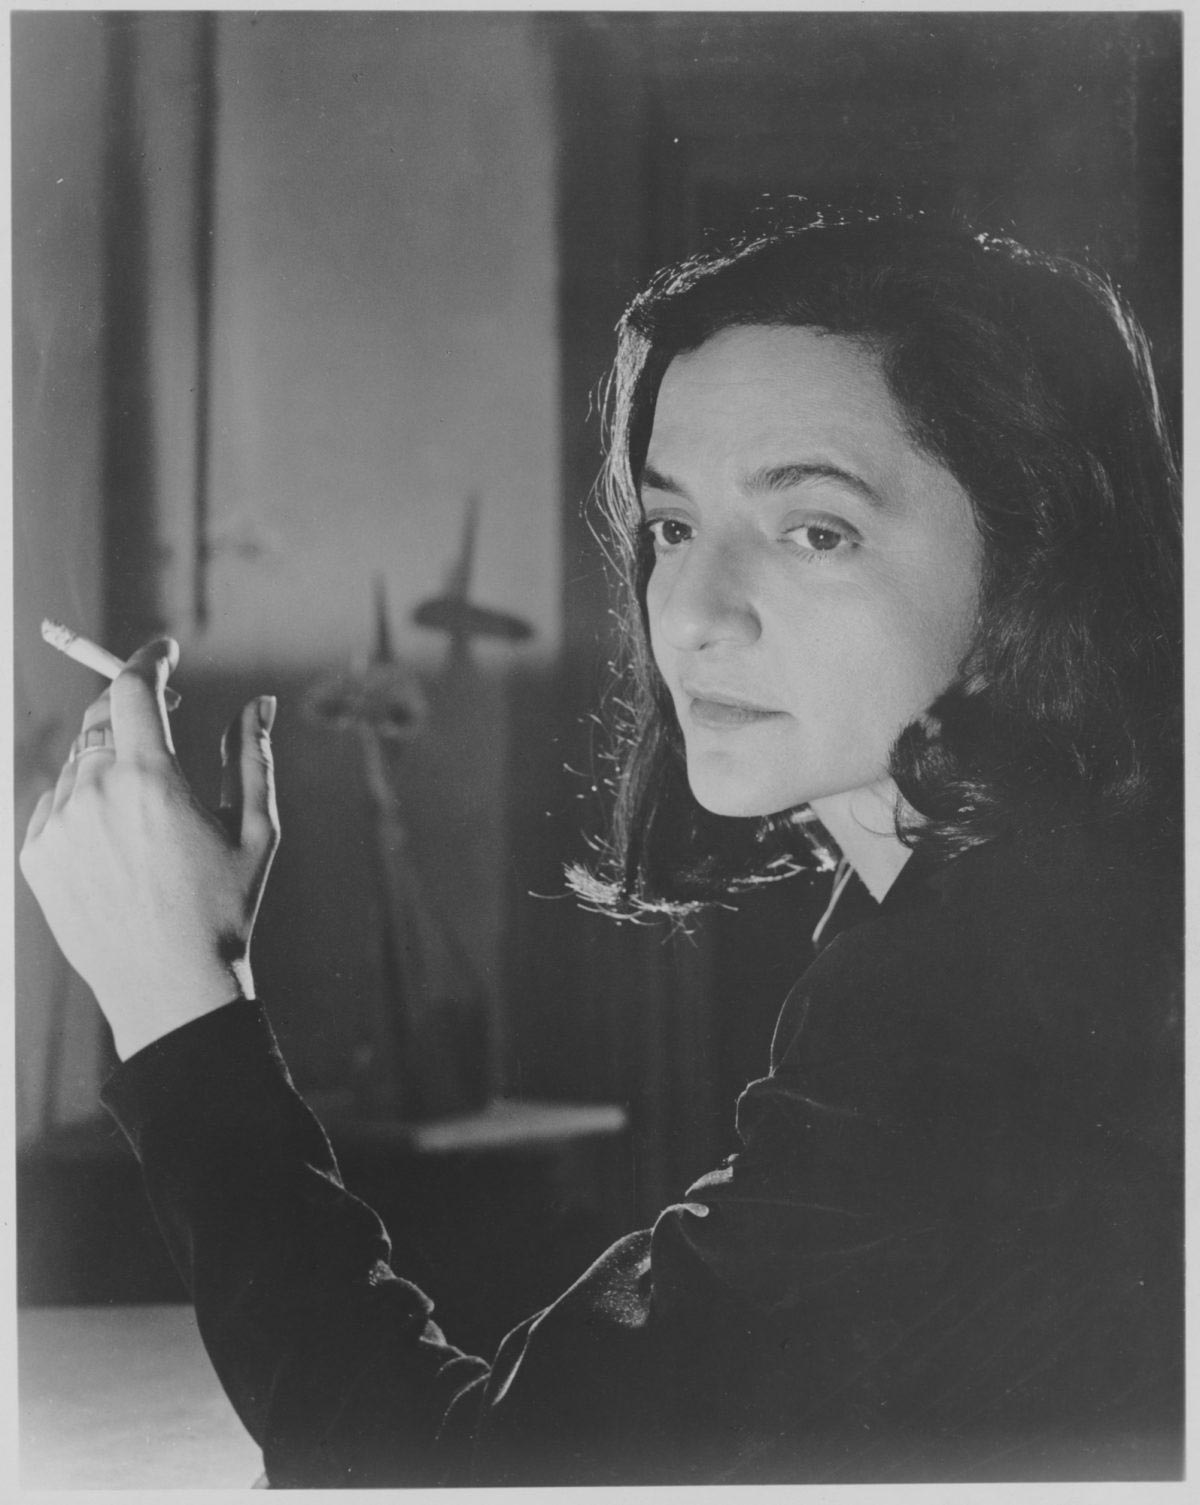 """Zahara Schatz, publicity photograph released in connection with the exhibition, """"New Lamps,"""" March 27, 1951–June 3, 1951. Photographic Archive. The Museum of Modern Art Archives, New York. IN473.4."""